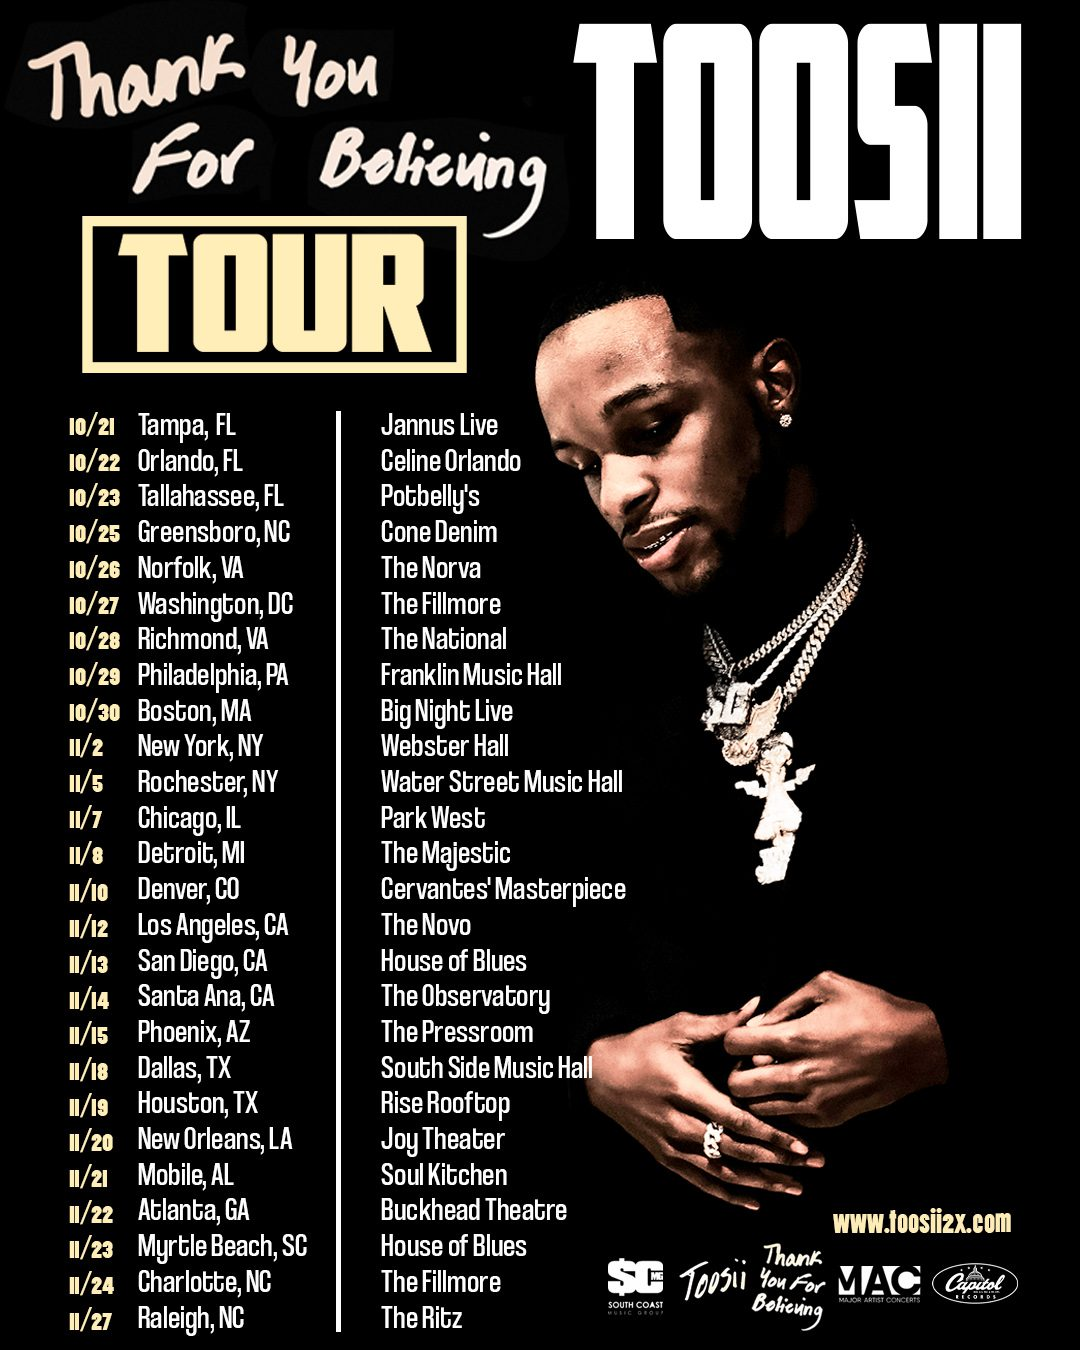 Thank You For Believing Tour Poster